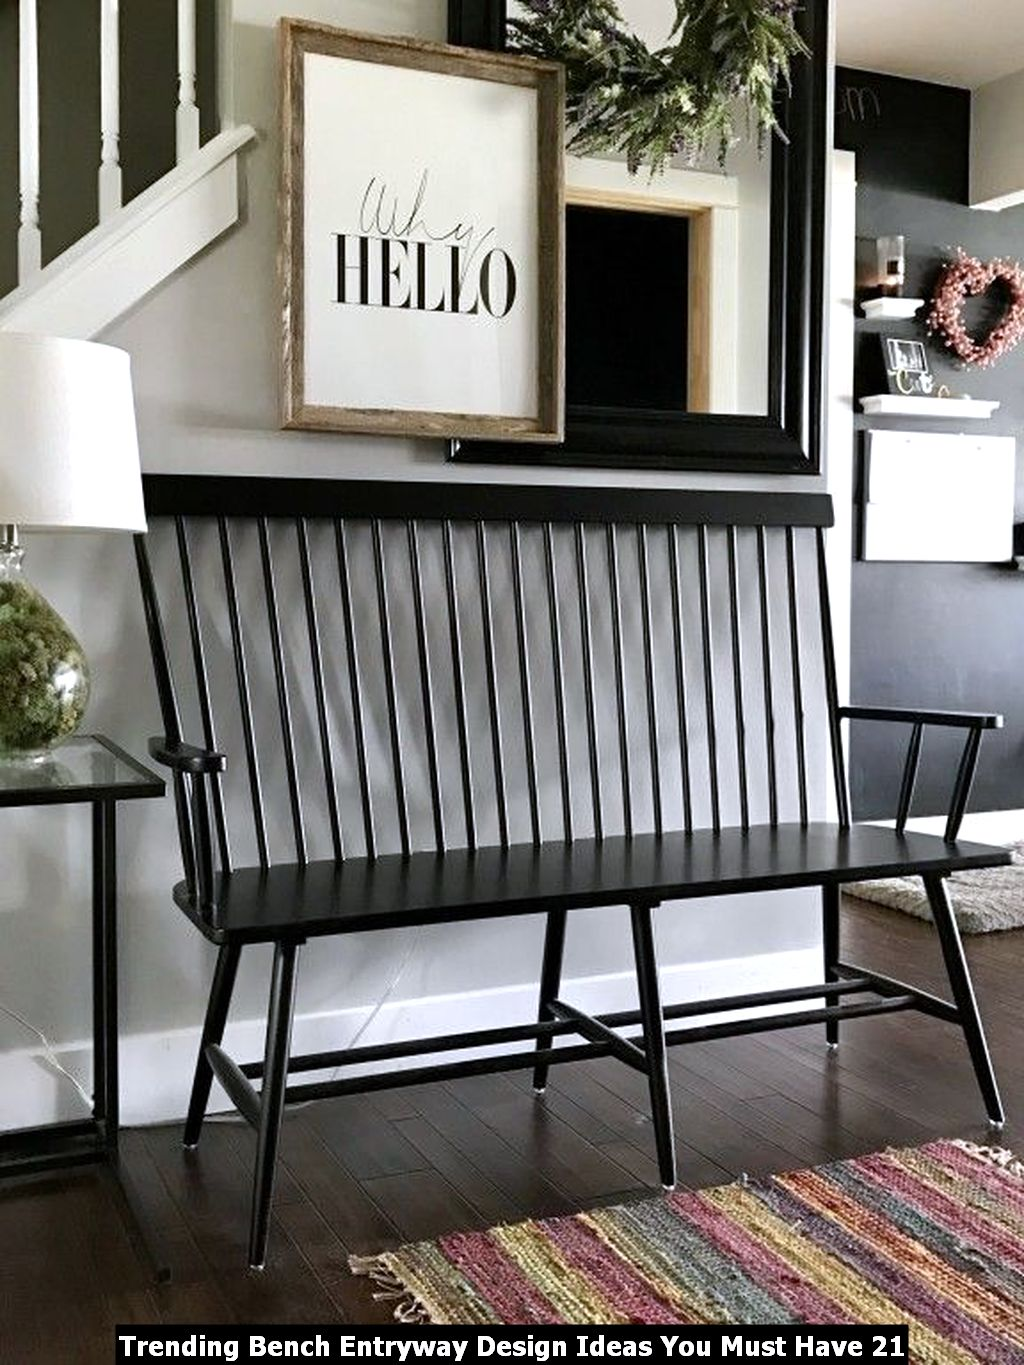 Trending Bench Entryway Design Ideas You Must Have 21